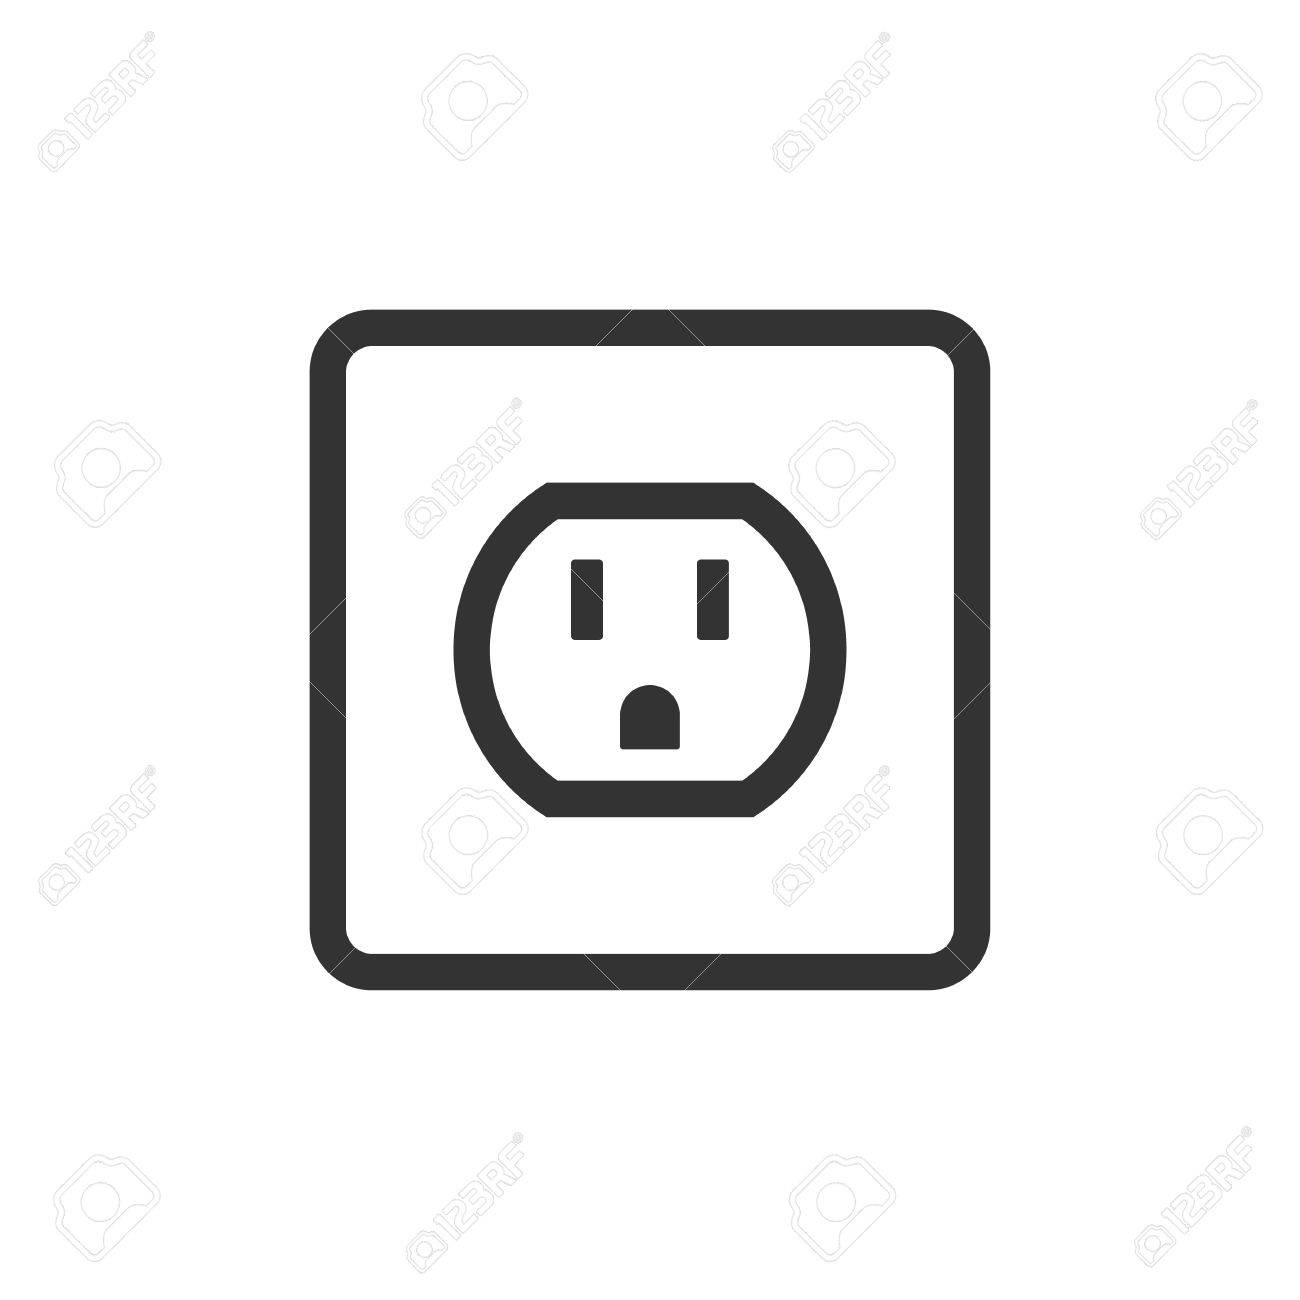 Electrical Outlet Icon In Single Grey Color Electronic Connect Plug Household Standard Bild